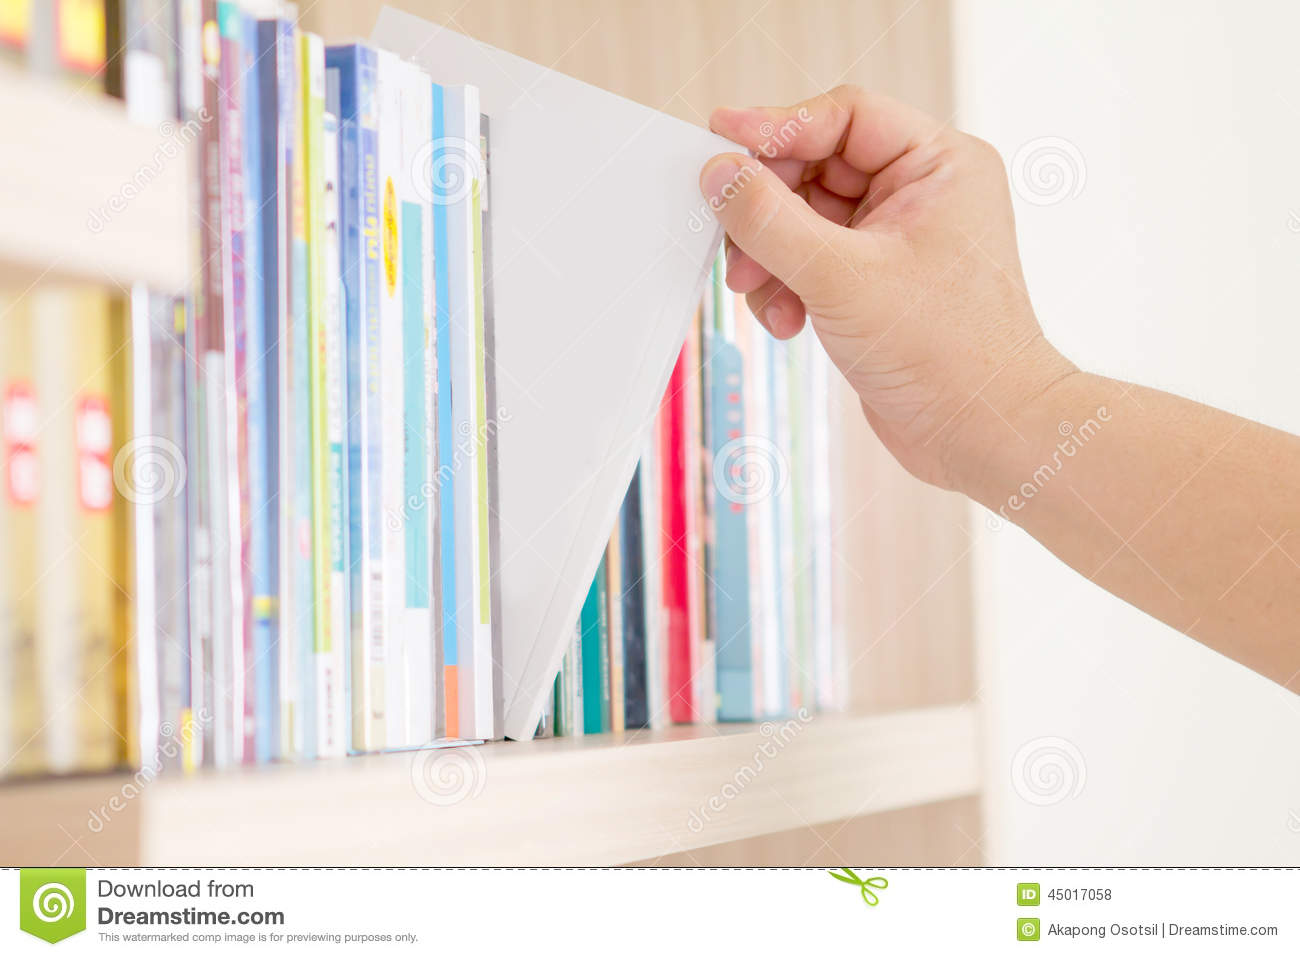 Hand Selecting Book From Bookshelf Download Preview